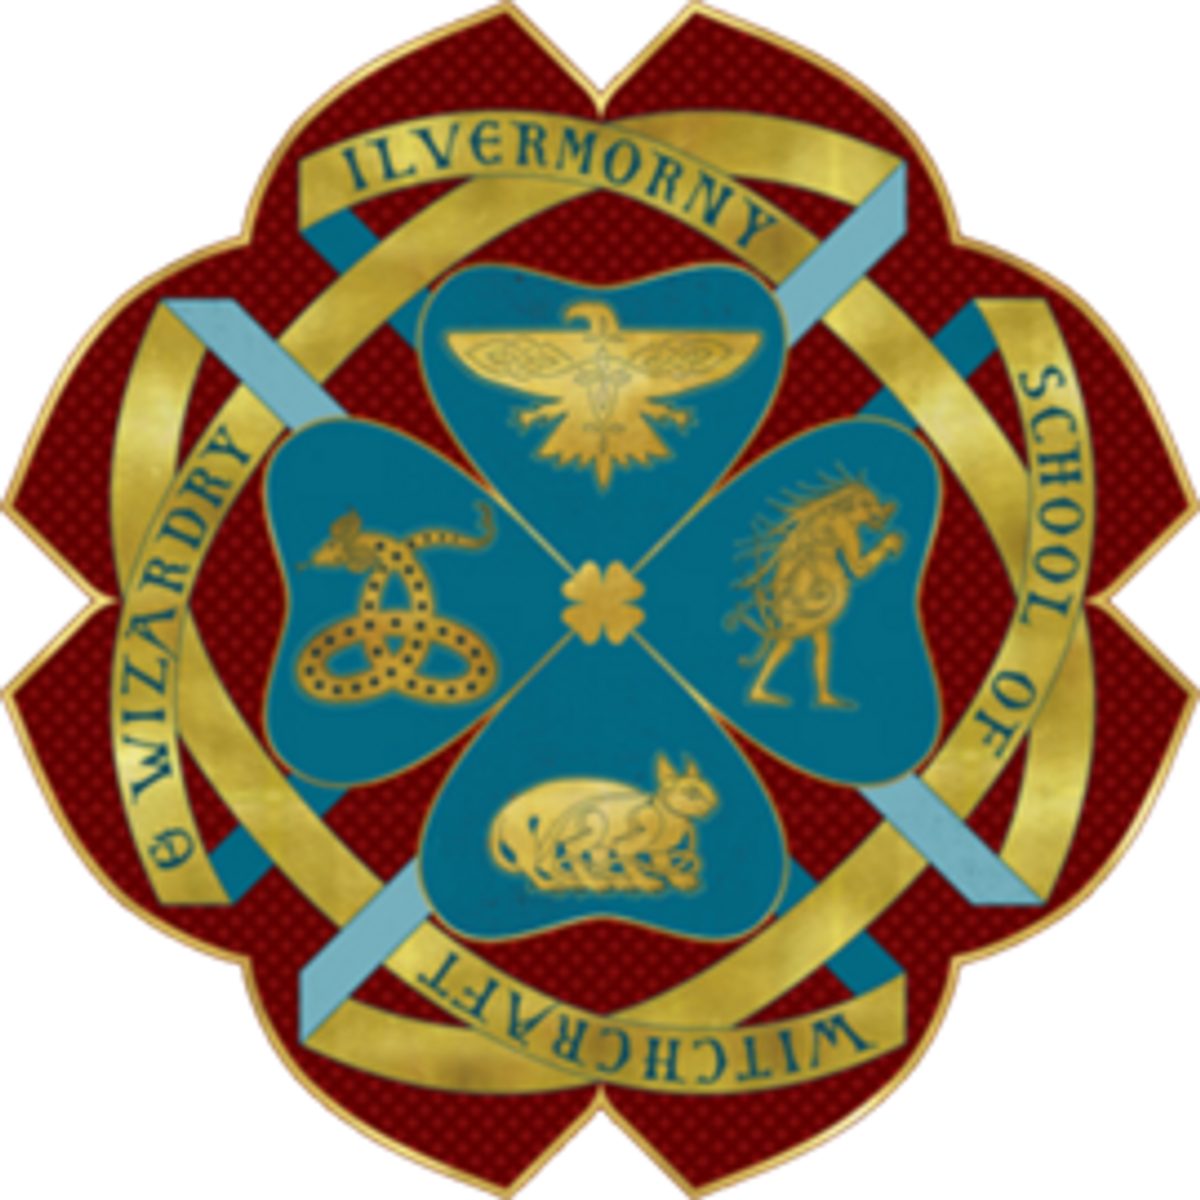 What Is Ilvermorny School Of Witchcraft And Wizardry